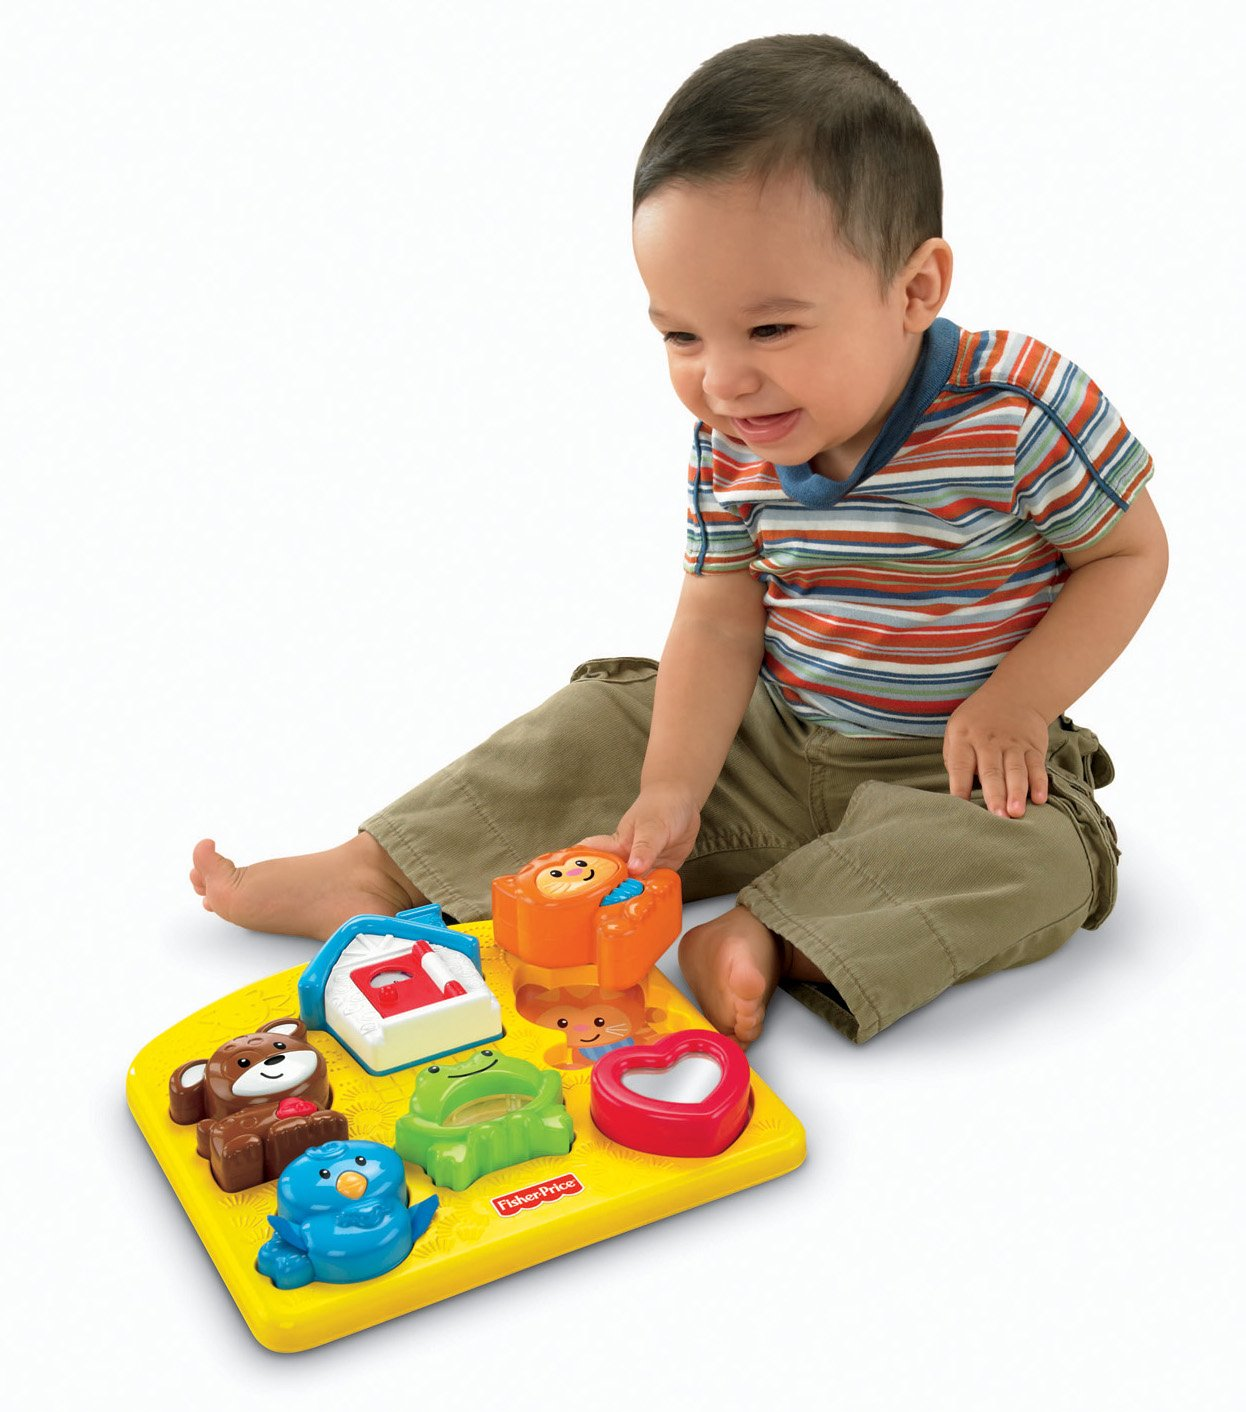 Activity Puzzle Fisher Price Brilliant Basics New Toy For Kids Baby Toddler